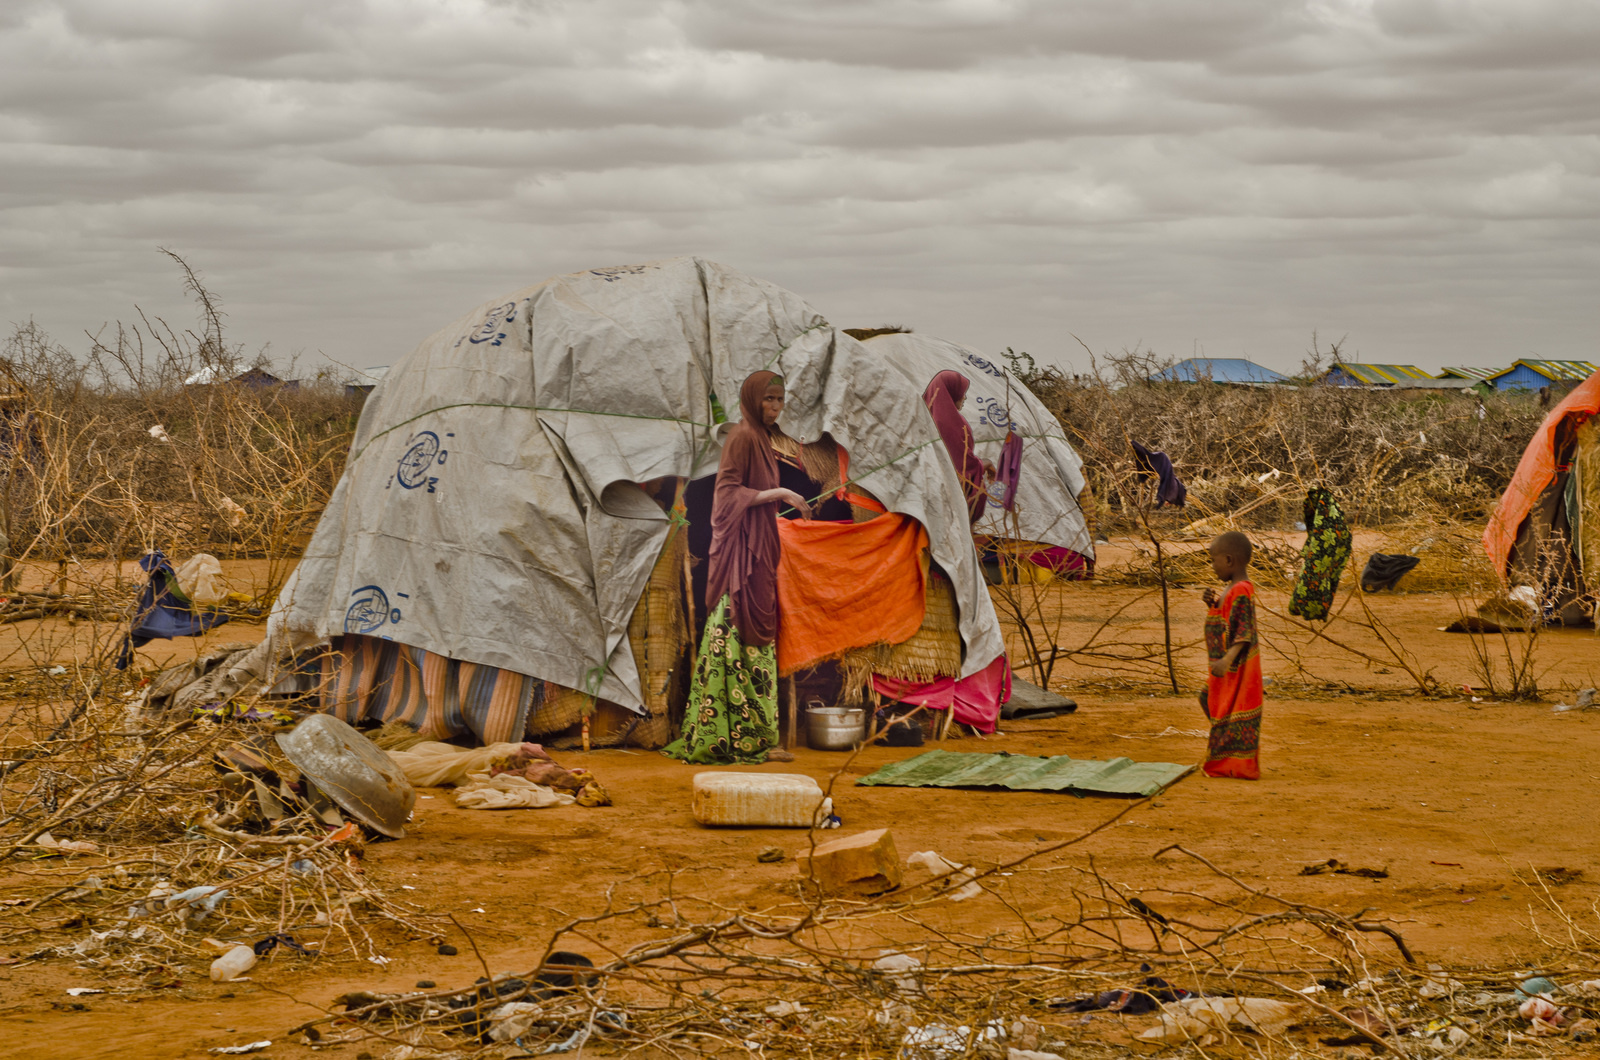 Mother beckoning her child to enter their shelter made of wood and plastic sheeting in Airstrip Area Displacement Site, Dolo Ado, Somali Region